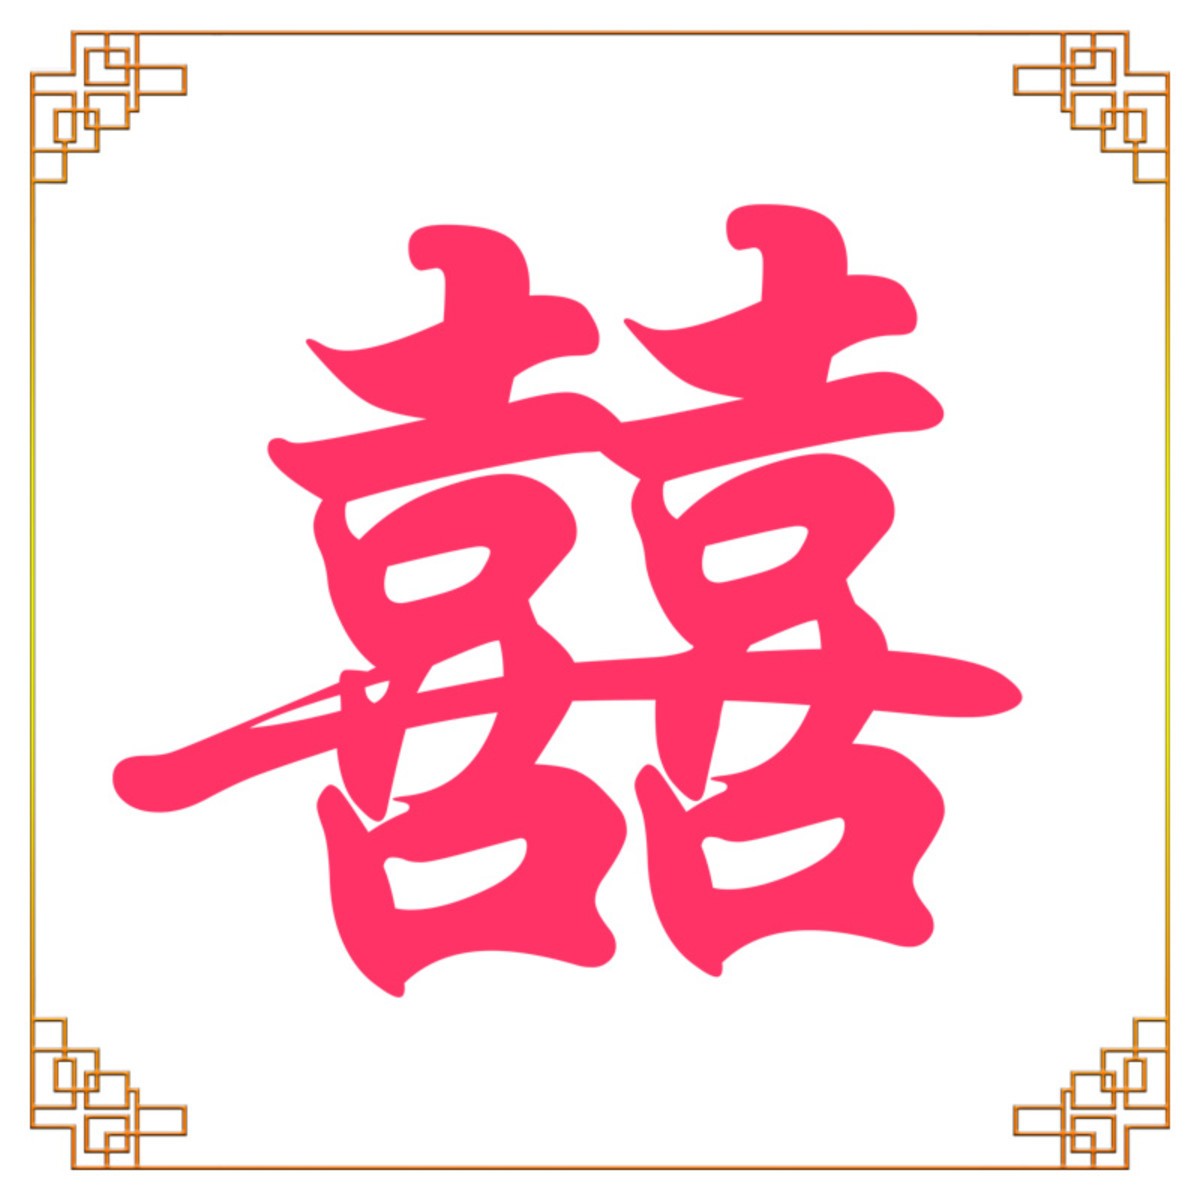 Shuang xi, which means double joy, is the most popular Chinese symbol for marital bliss.